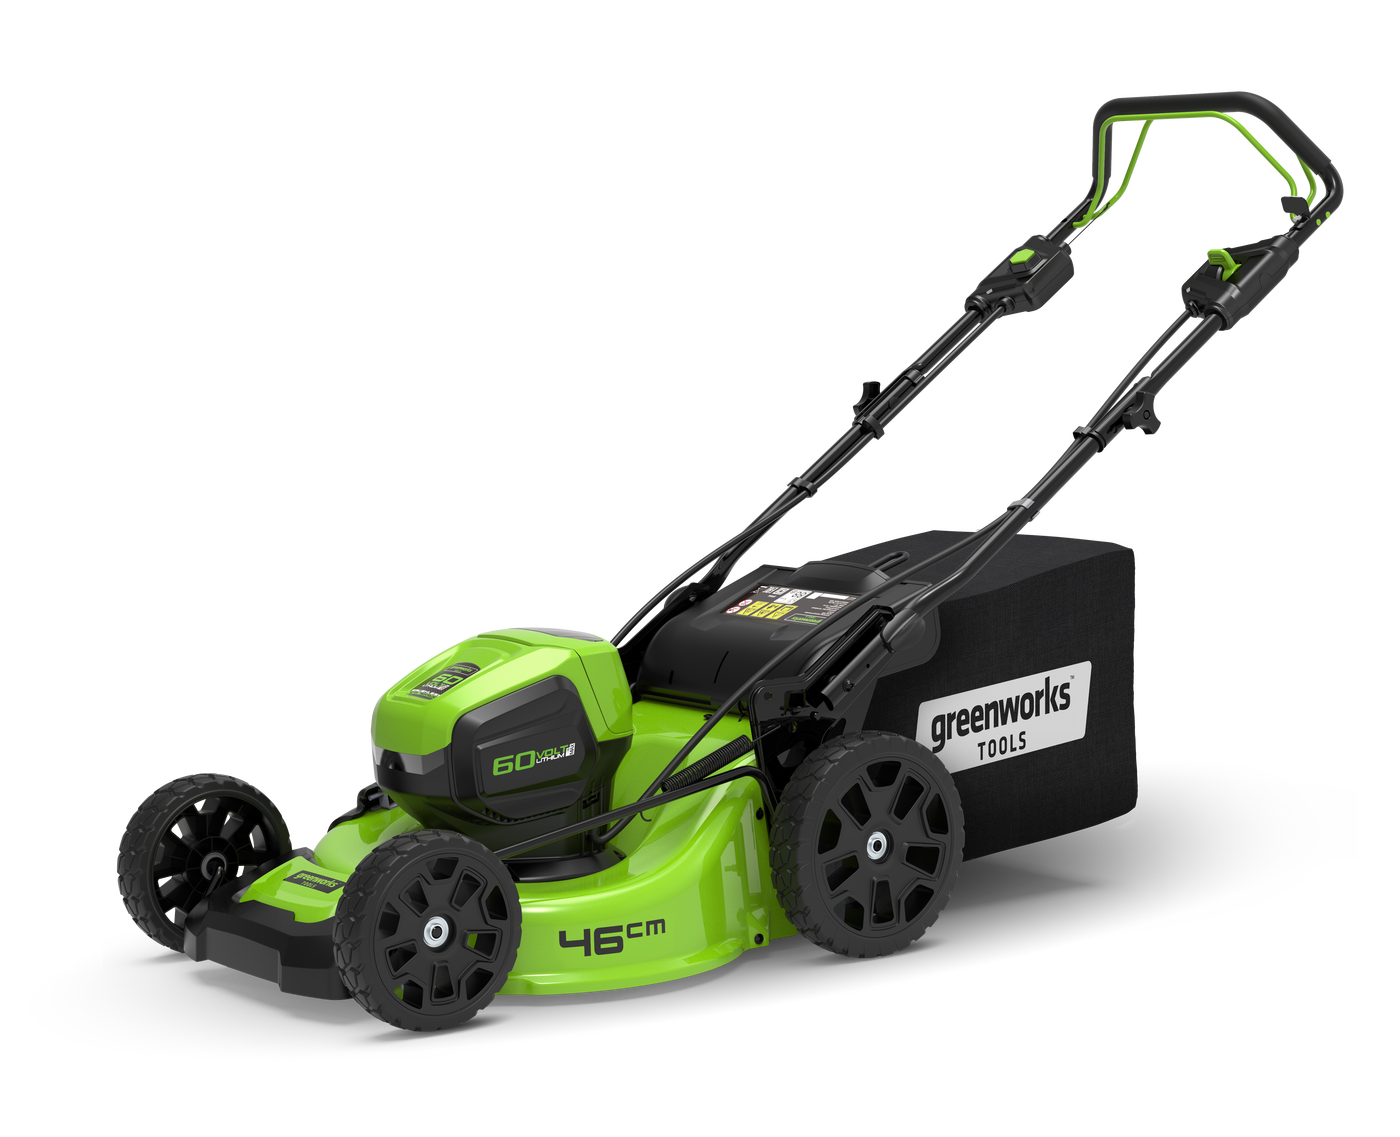 Газонокосилка GreenWorks GD60LM46SP